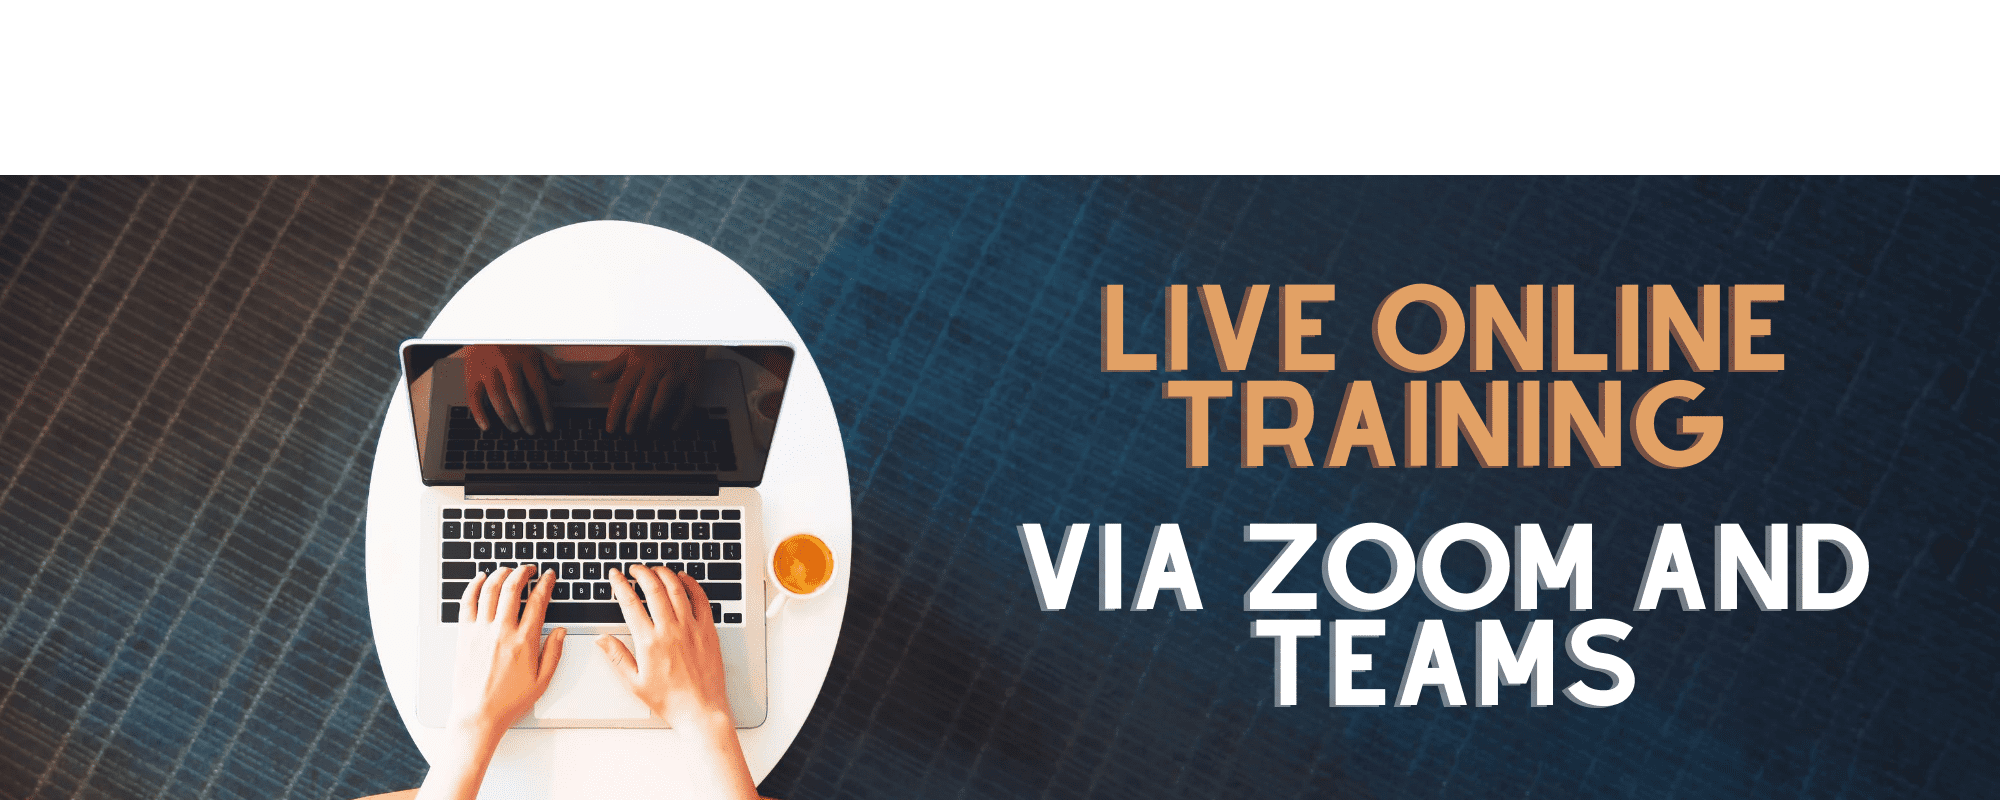 Training Via Zoom and Teams